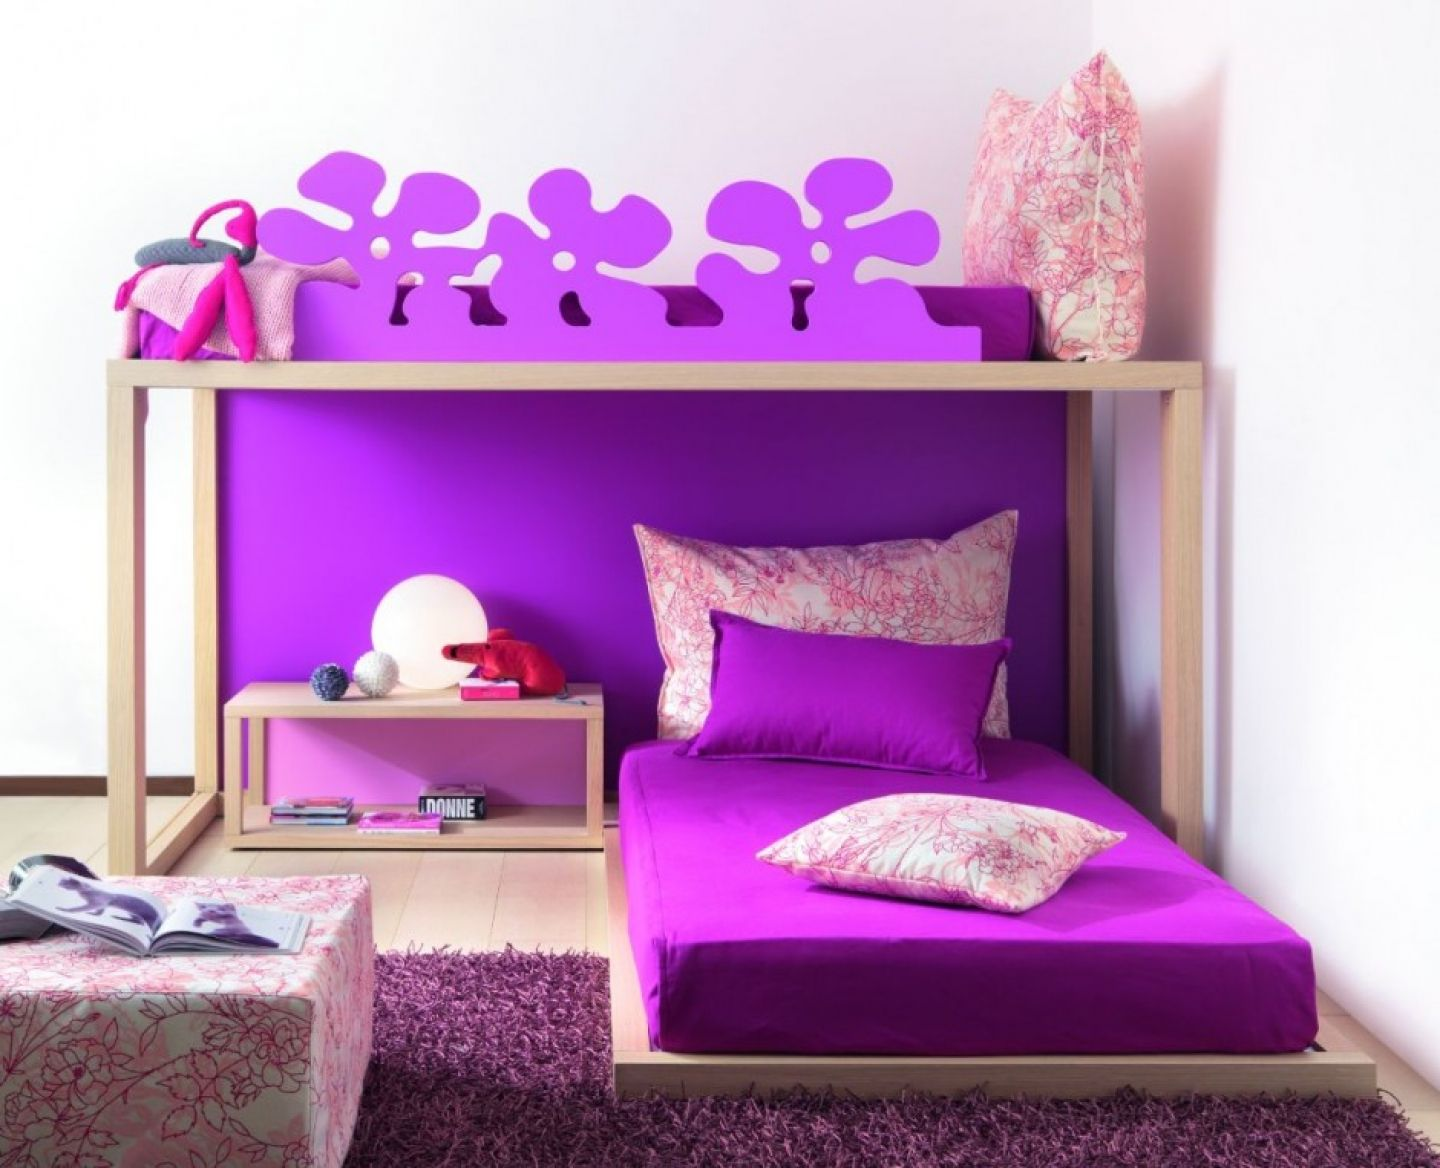 Bedrooms for girls purple and white - Teal Colored Beds For Little Kids Beds With Purple Rug And Wooden